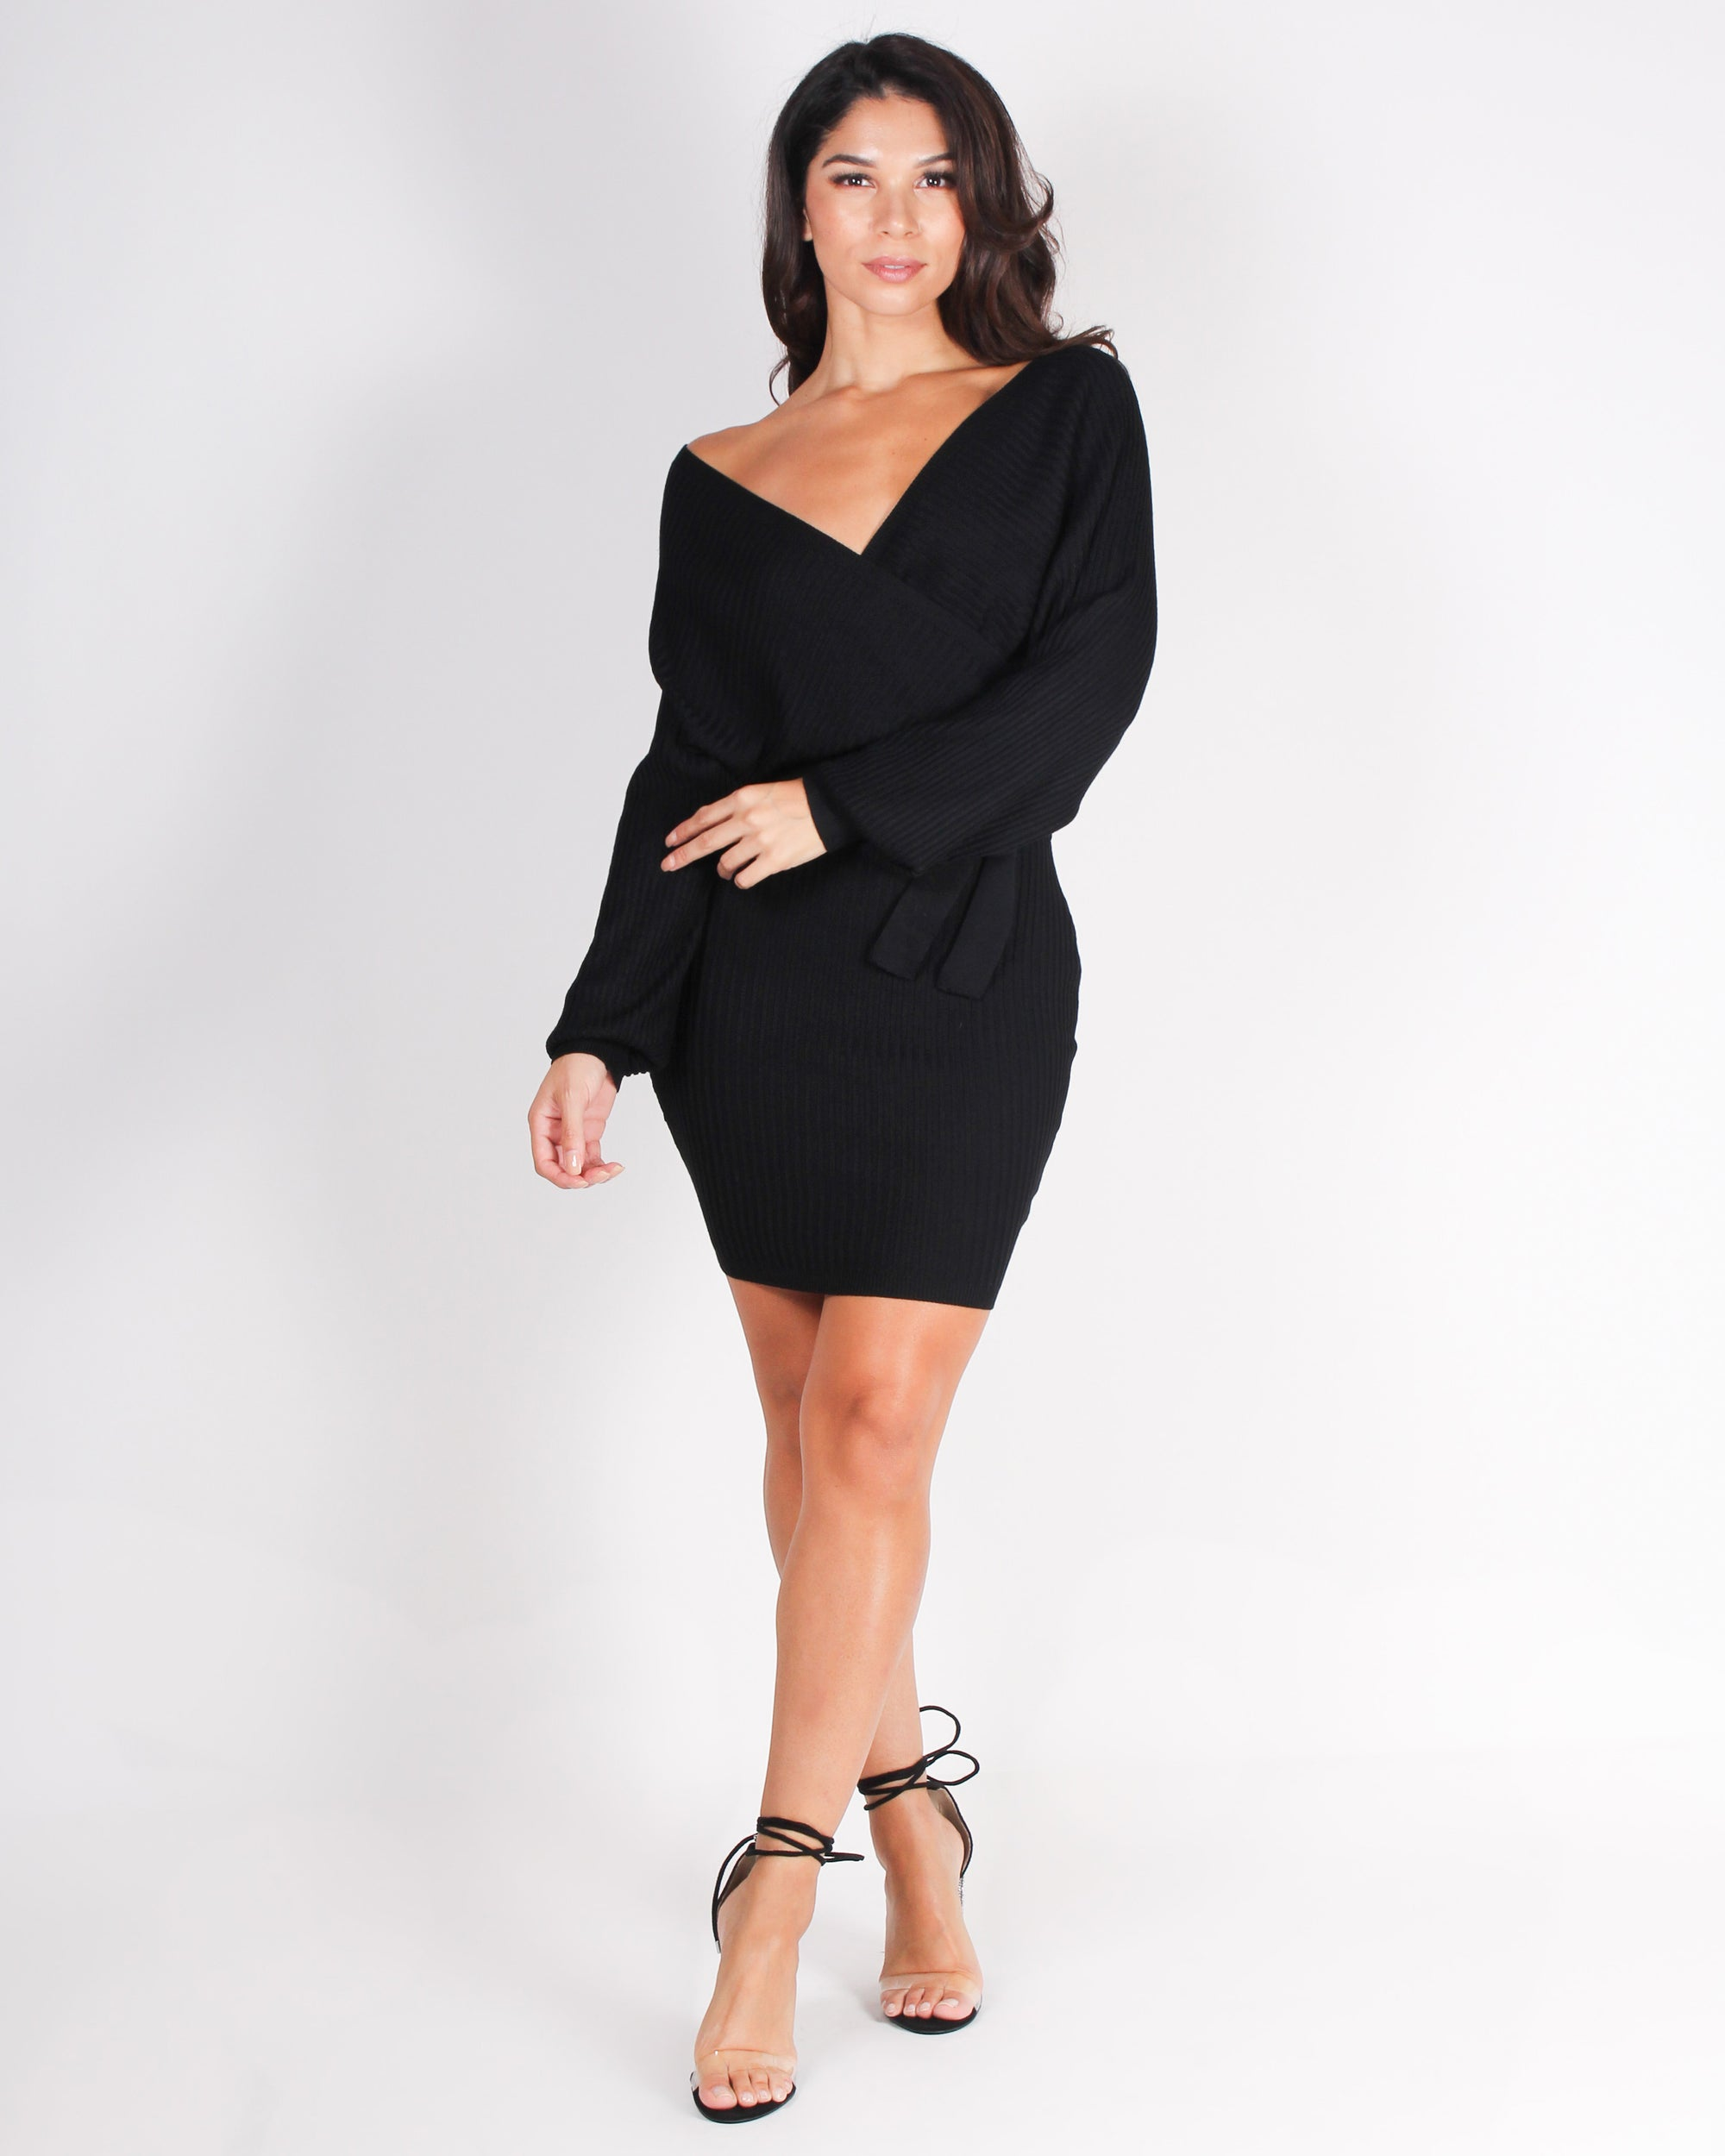 Fashion Q Shop Q Awaken Your Fire Bodycon Dress (Black) W9025